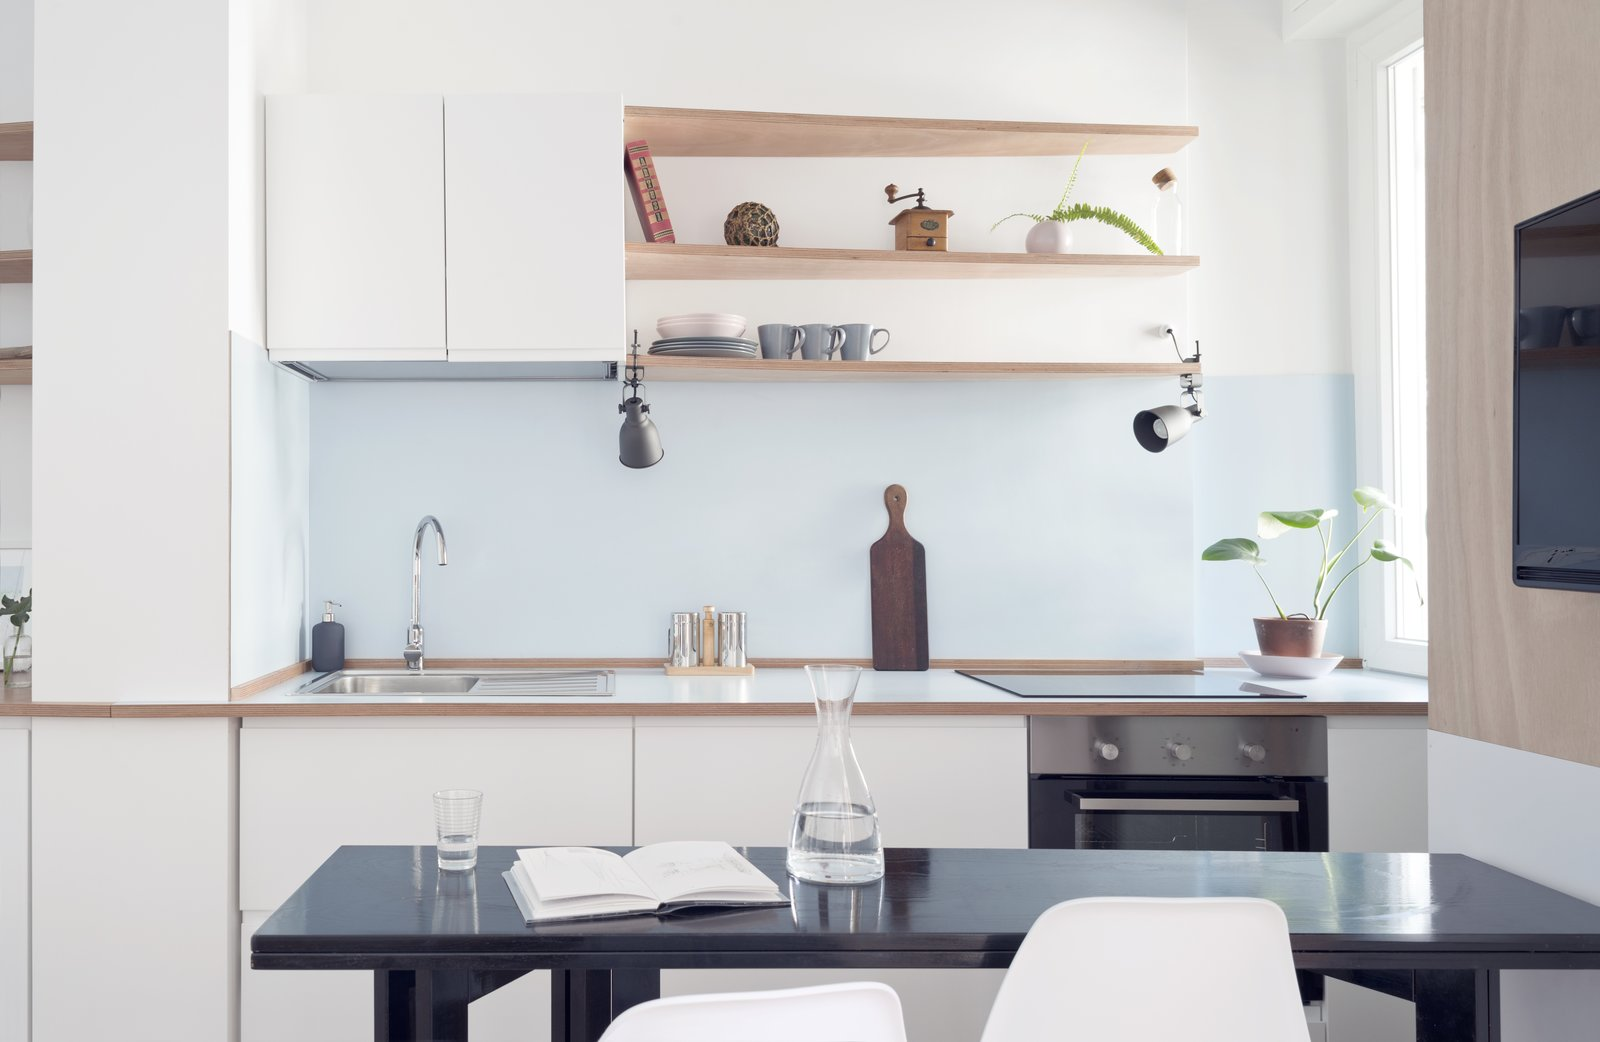 A small kitchenette and dining room is located the the windows.